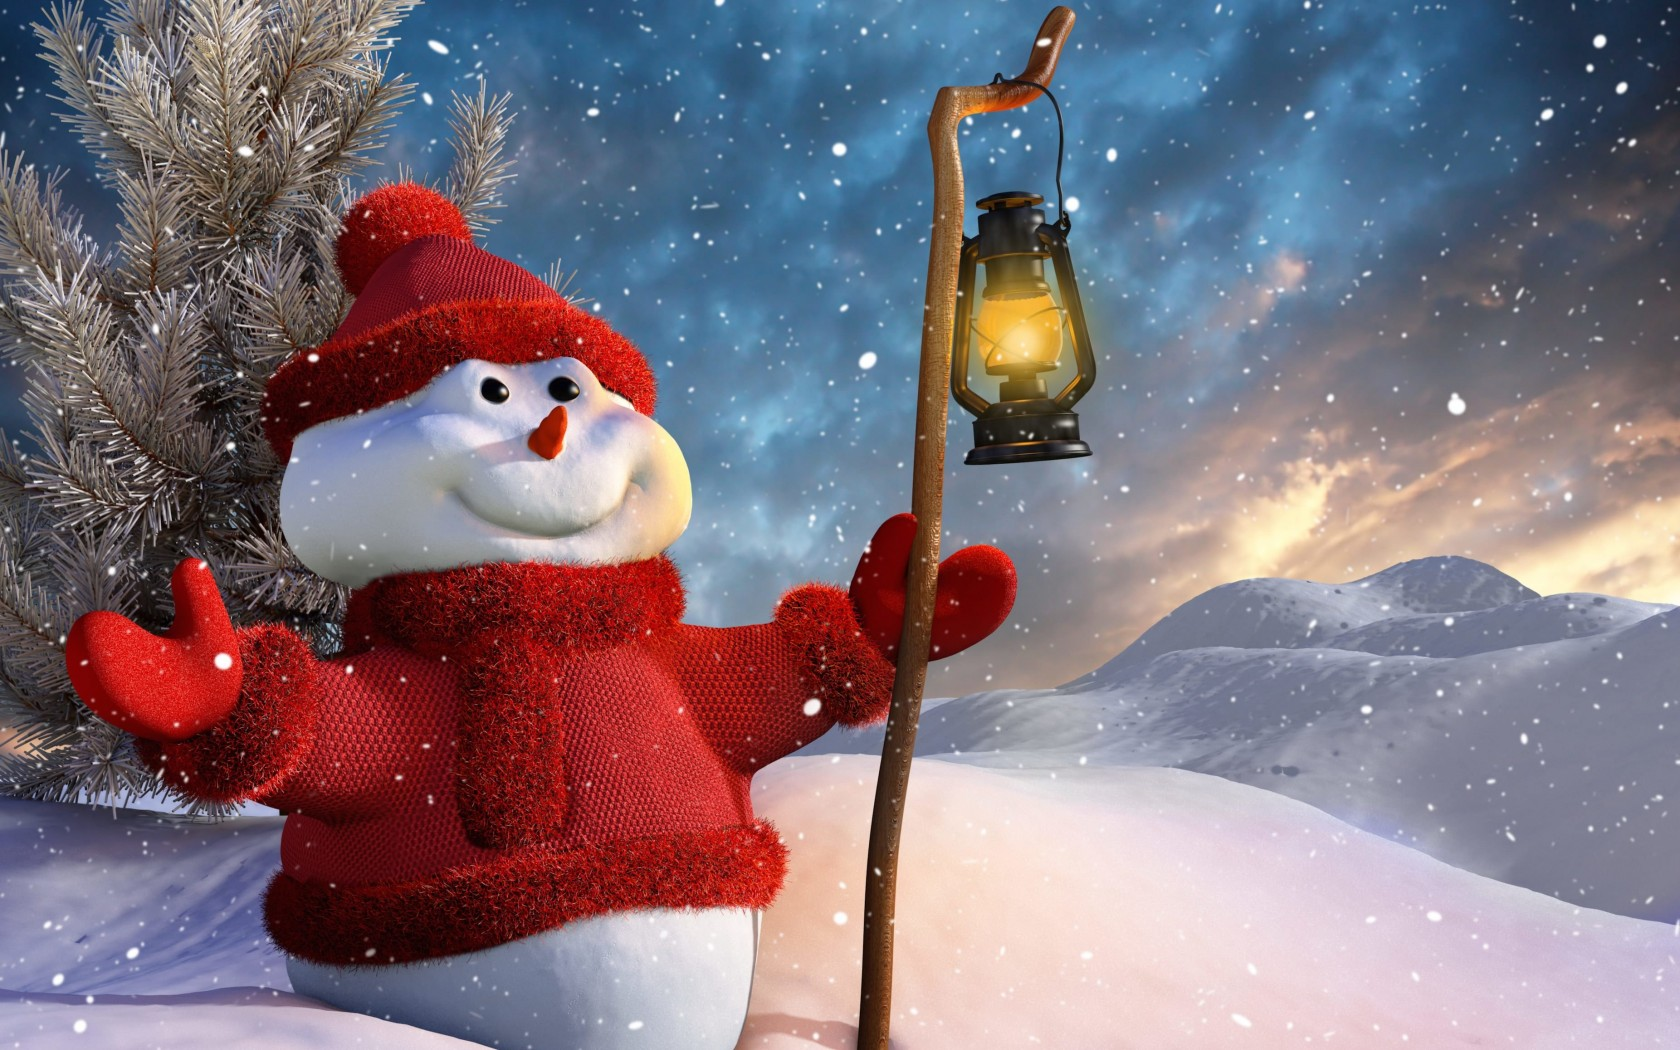 Christmas Snowman Wallpaper for Desktop 1680x1050